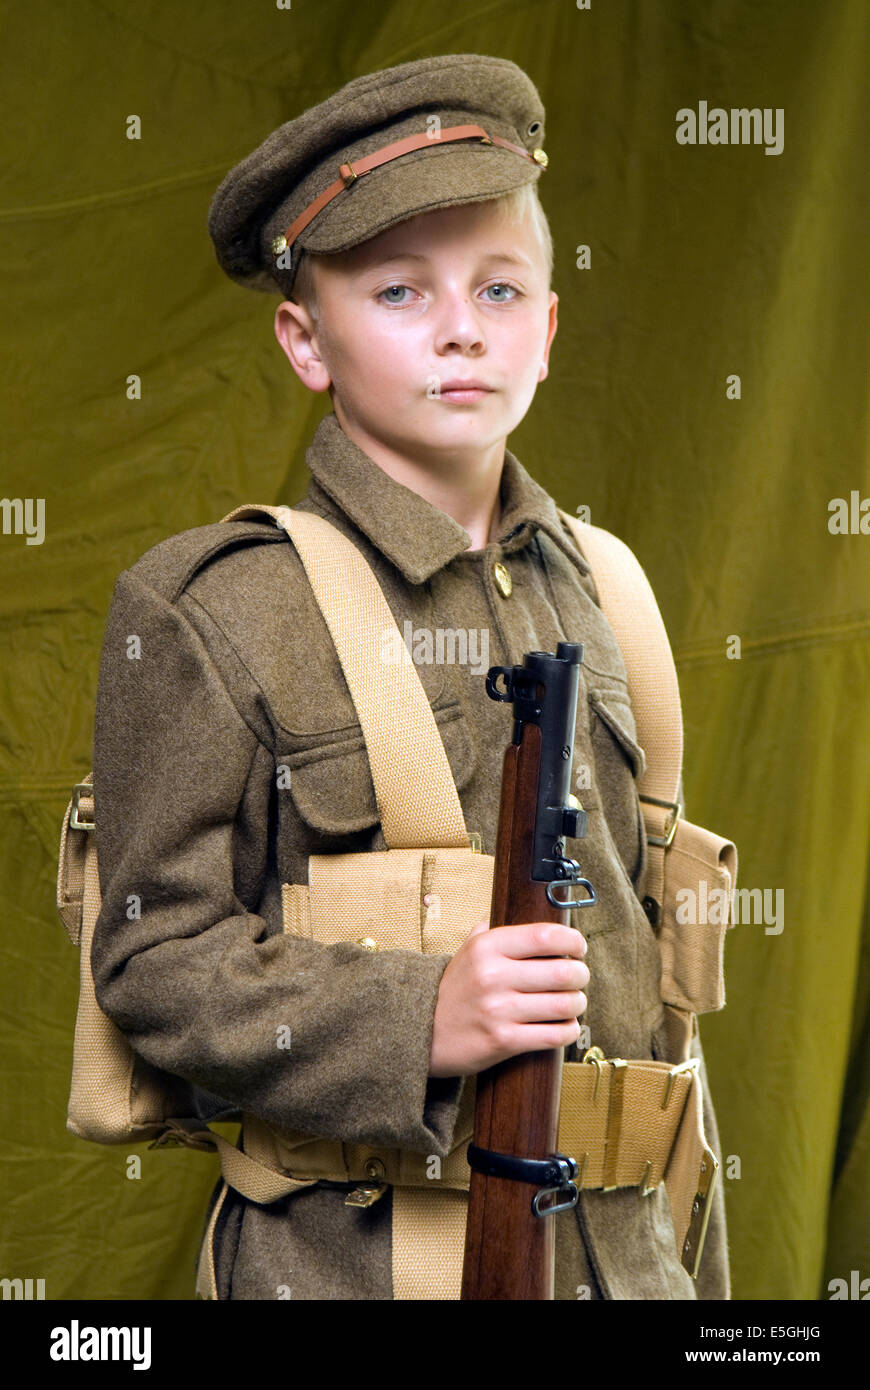 10 year old boy at a World War One history event dressed in WW1 uniform, near Haslemere, Surrey, UK. - Stock Image